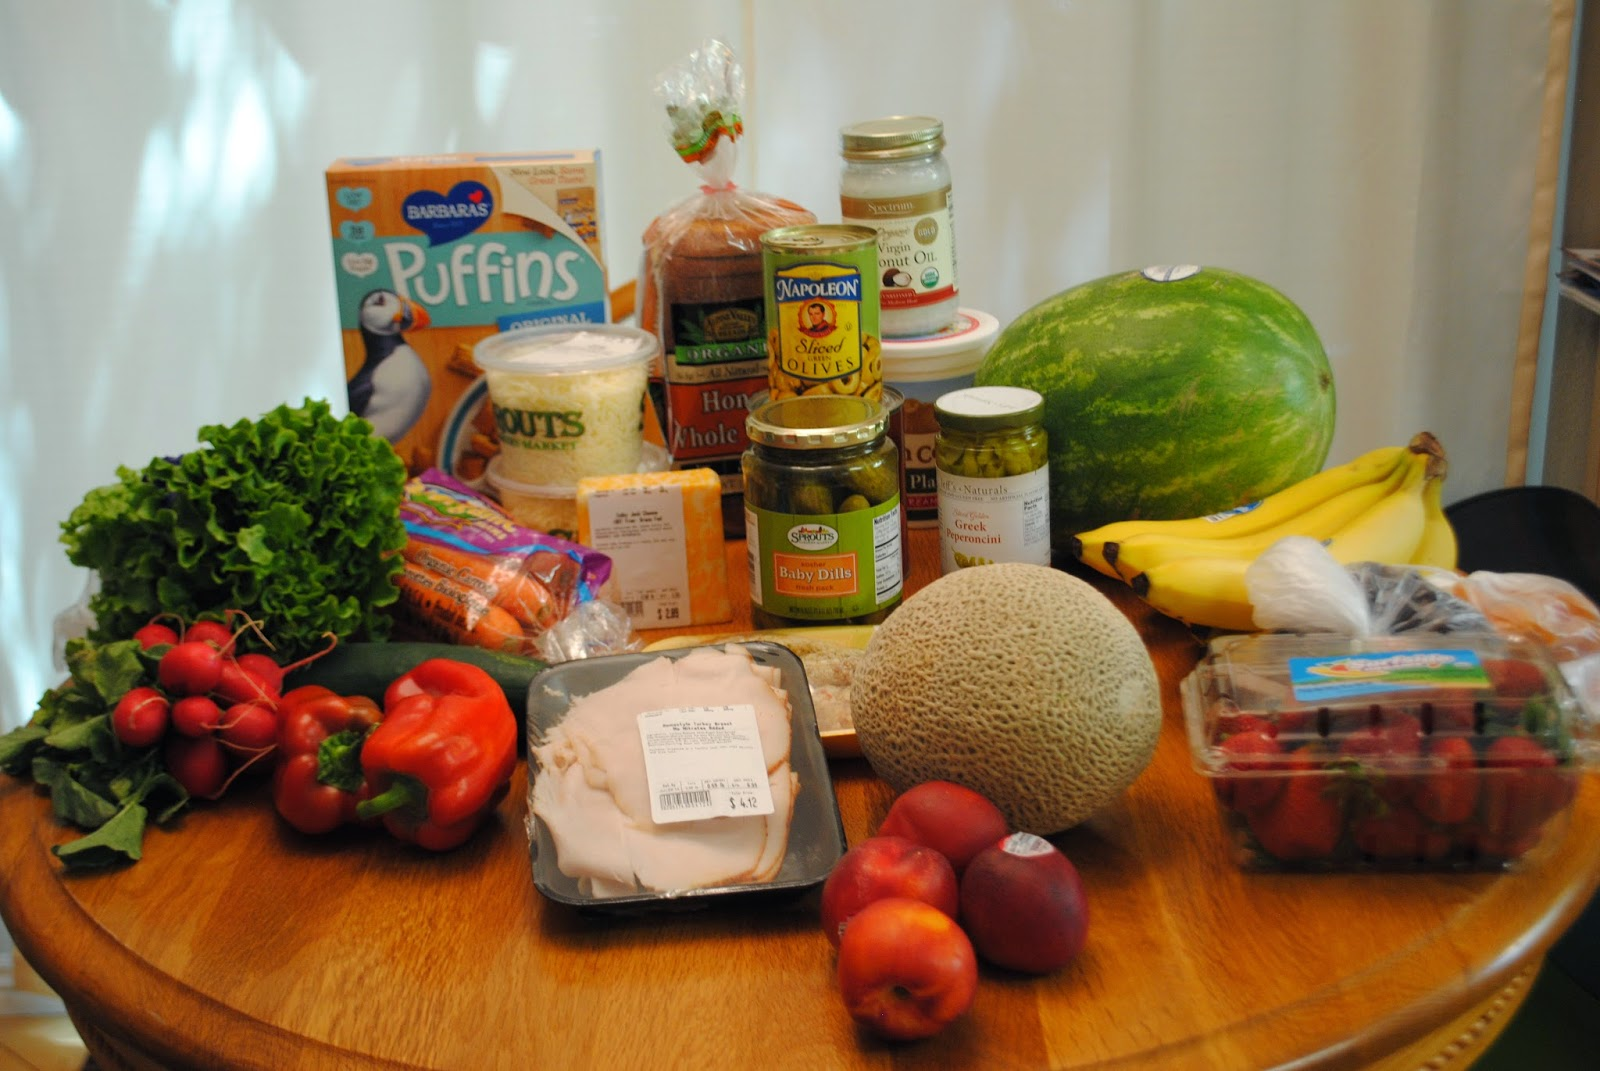 groceries from sprouts